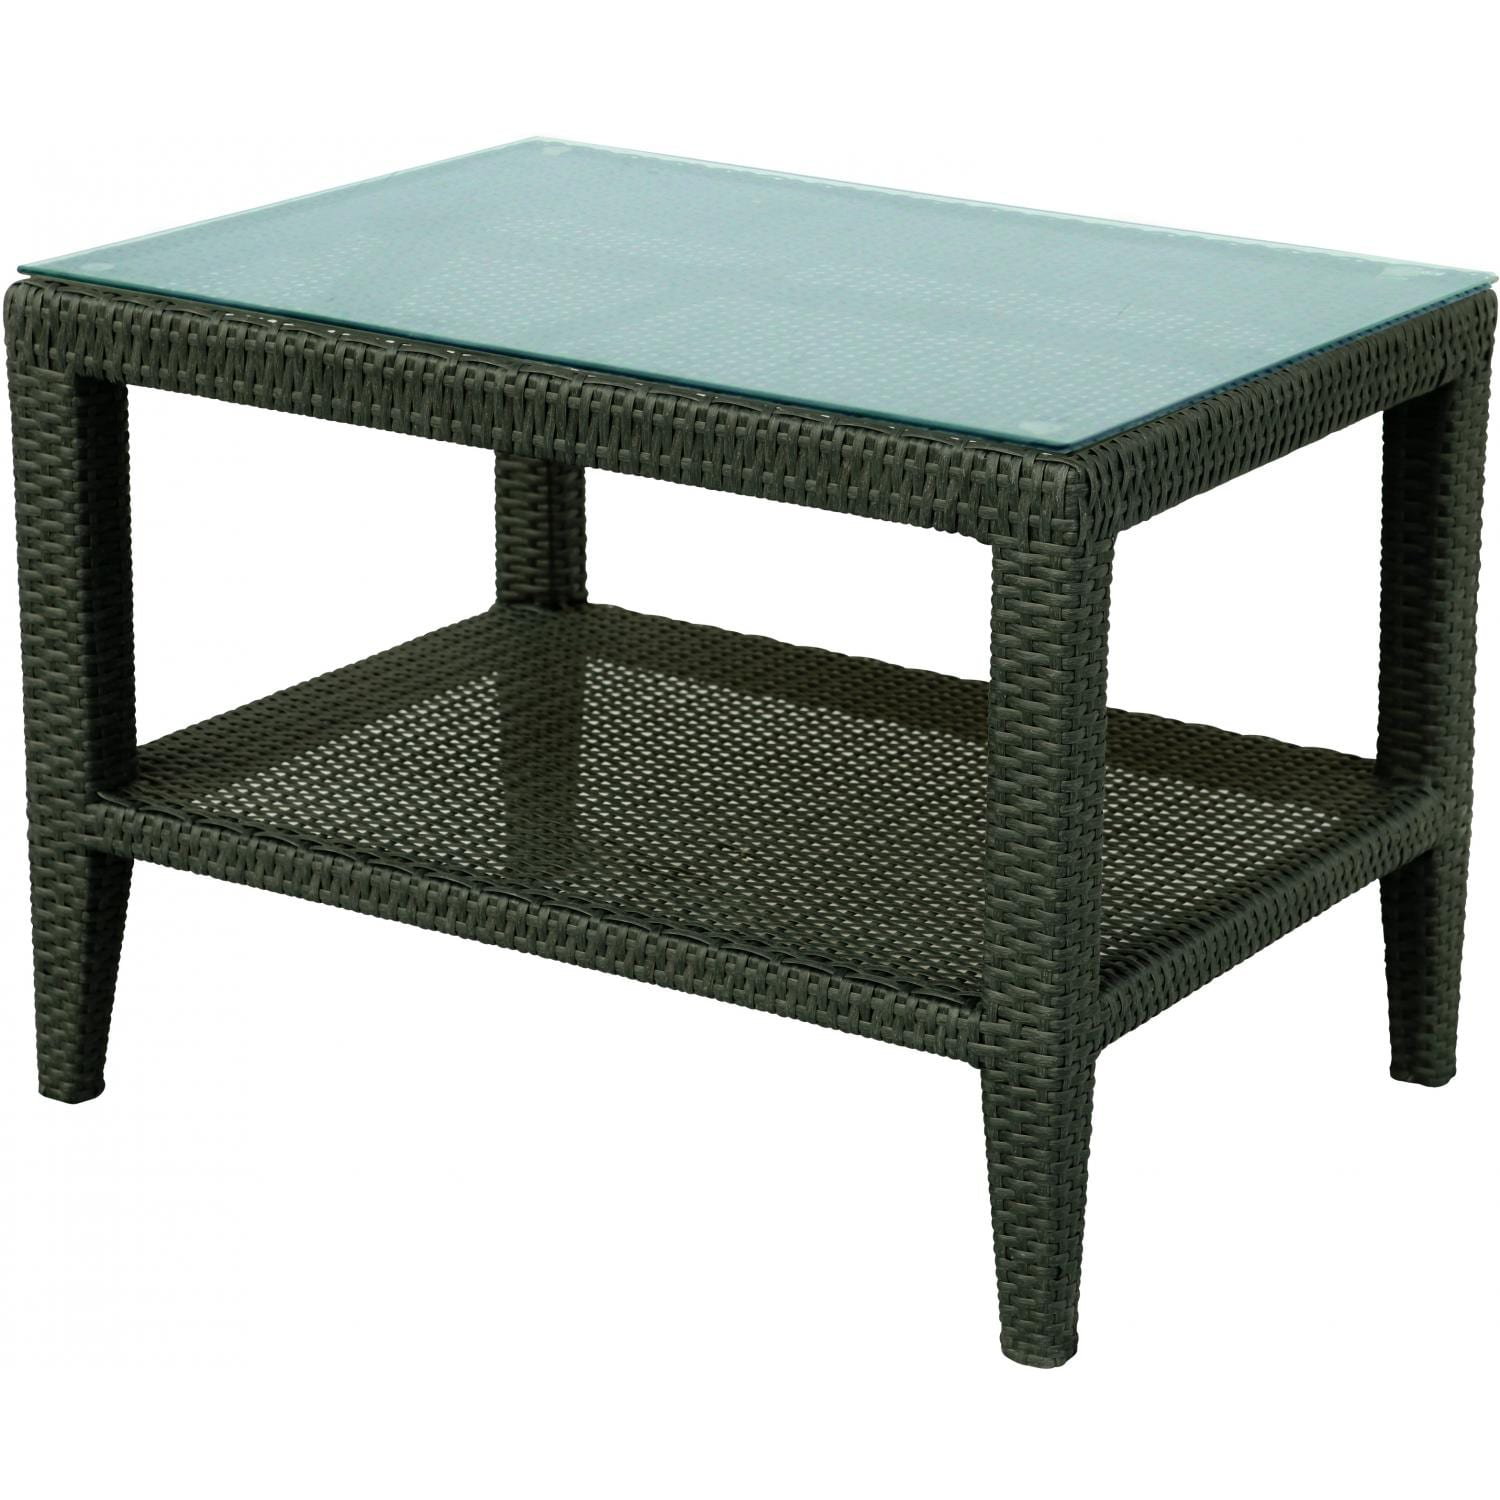 Darlee Vienna Resin Wicker Patio Side Table With Glass Top - Espresso